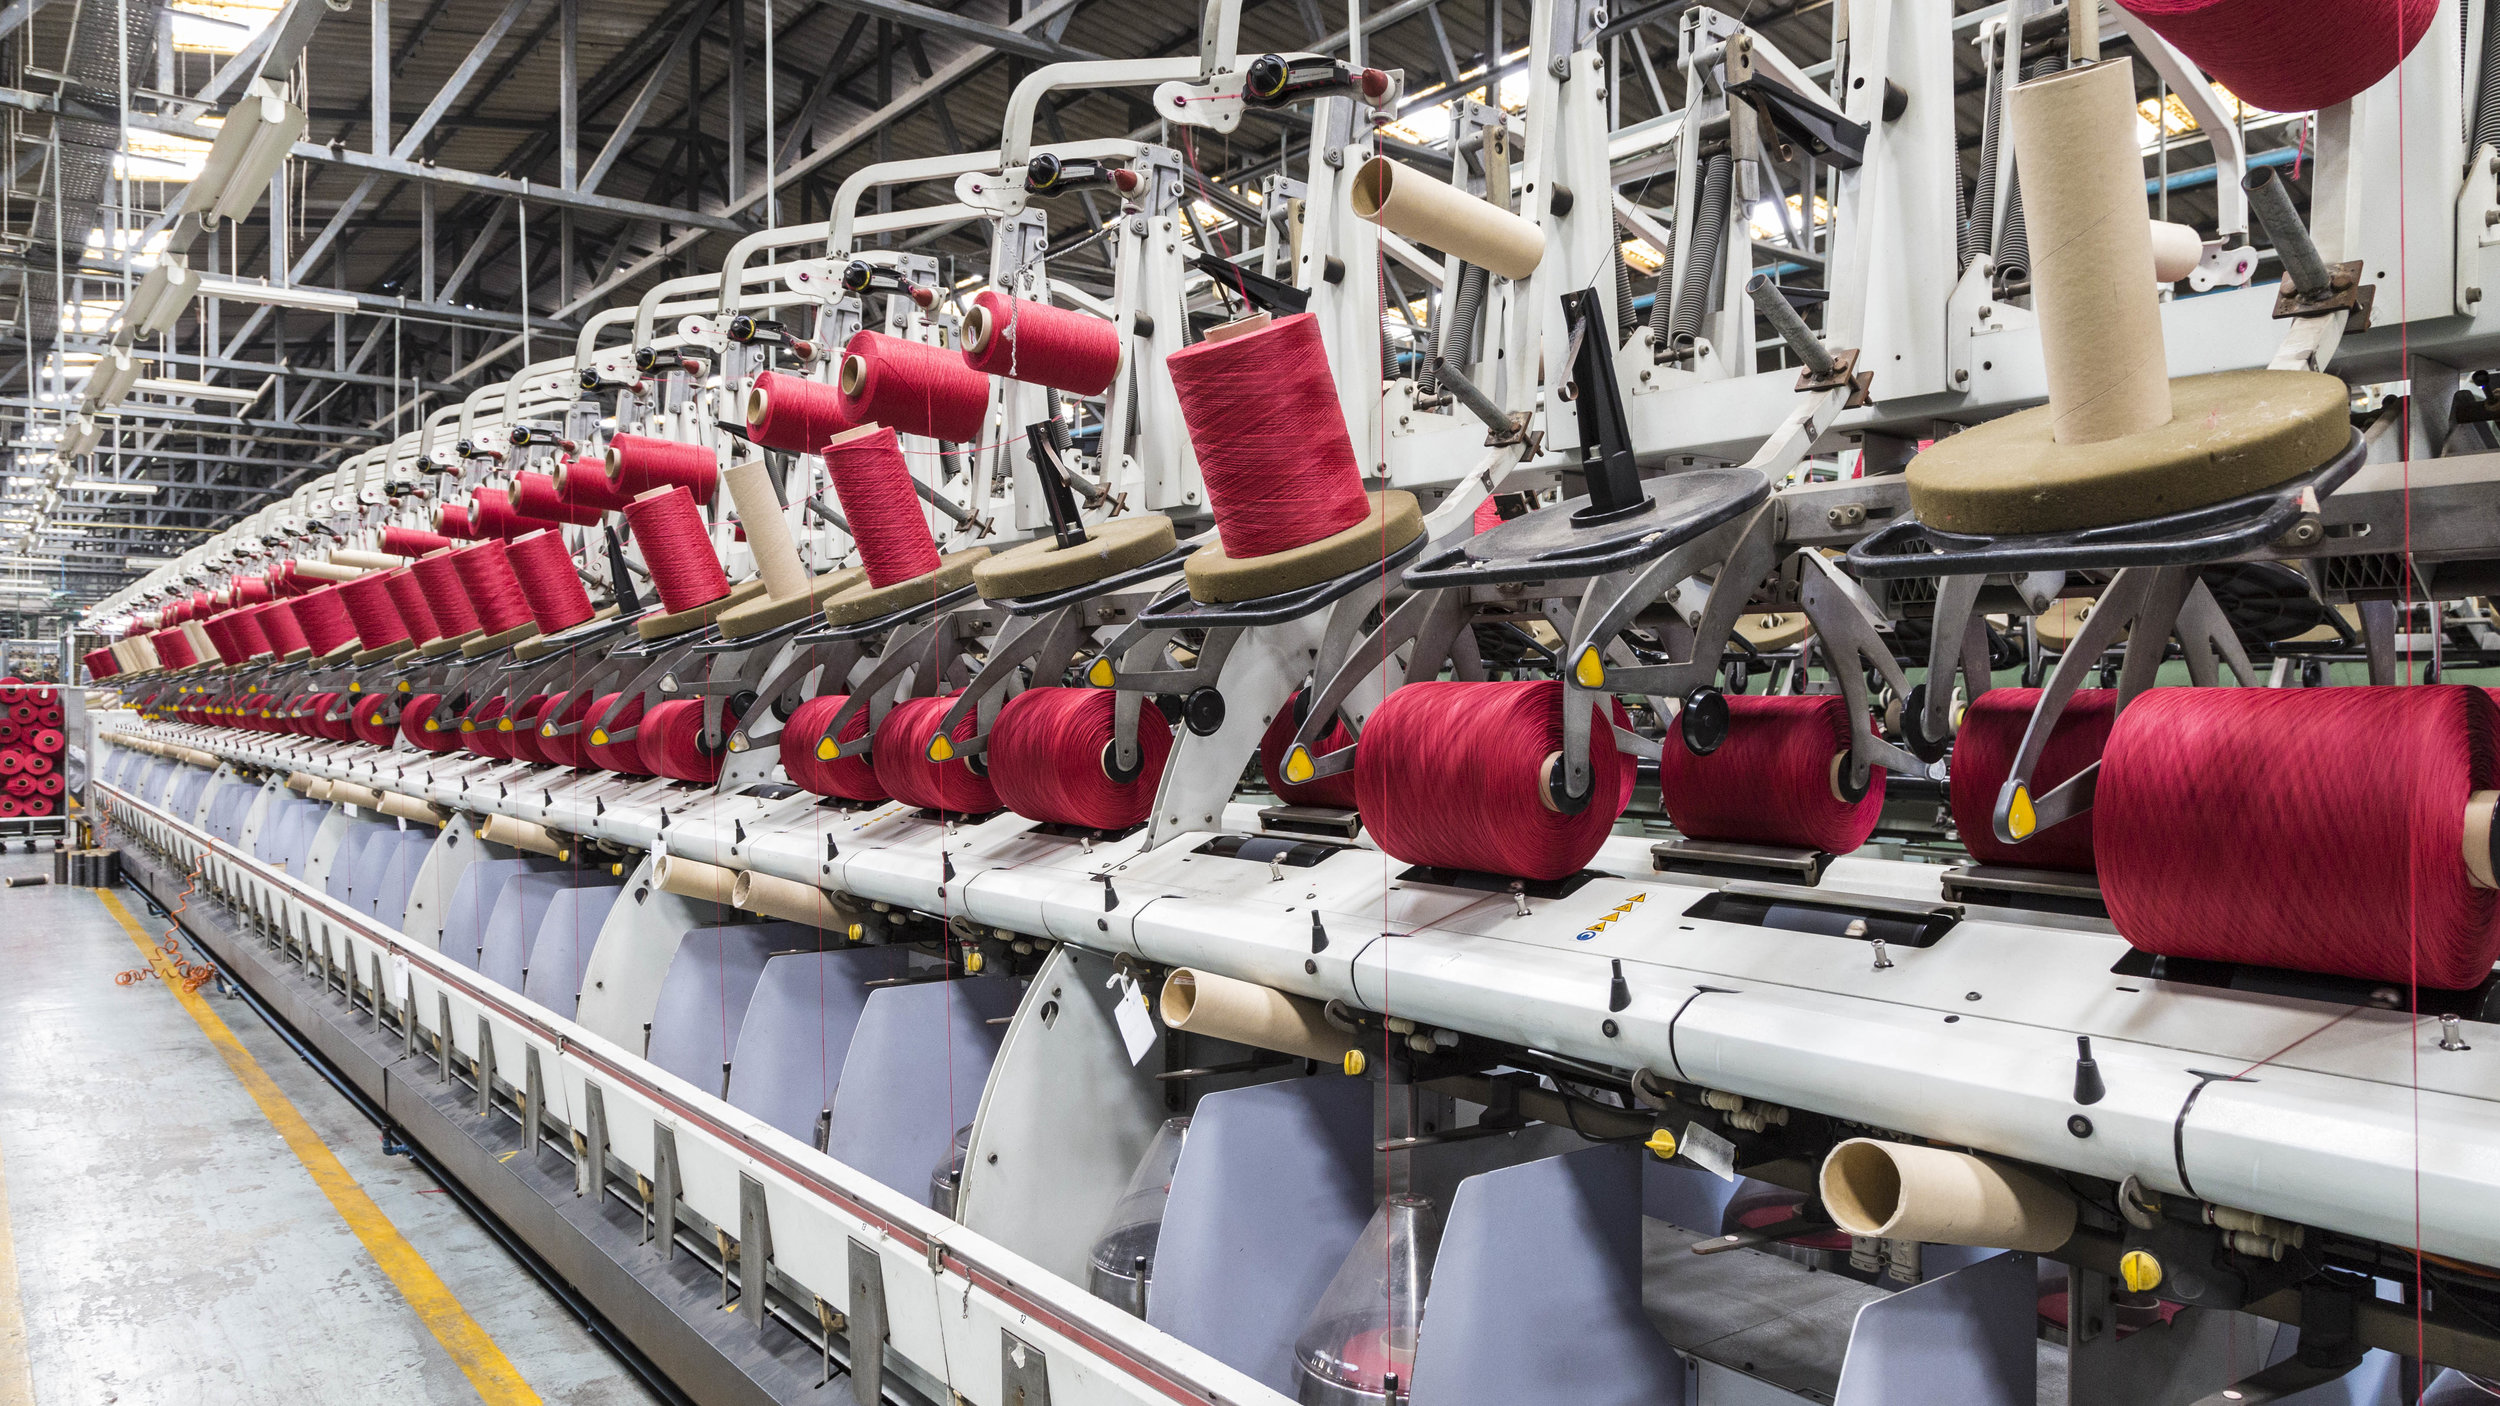 Fiber & Yarn Production - At Carpets Inter we begin with the best materials,including natural wool fibers from New Zealand and the UK. We also use both in-house and imported man-made fibers and yarns such as nylon, olefin,and polyester.